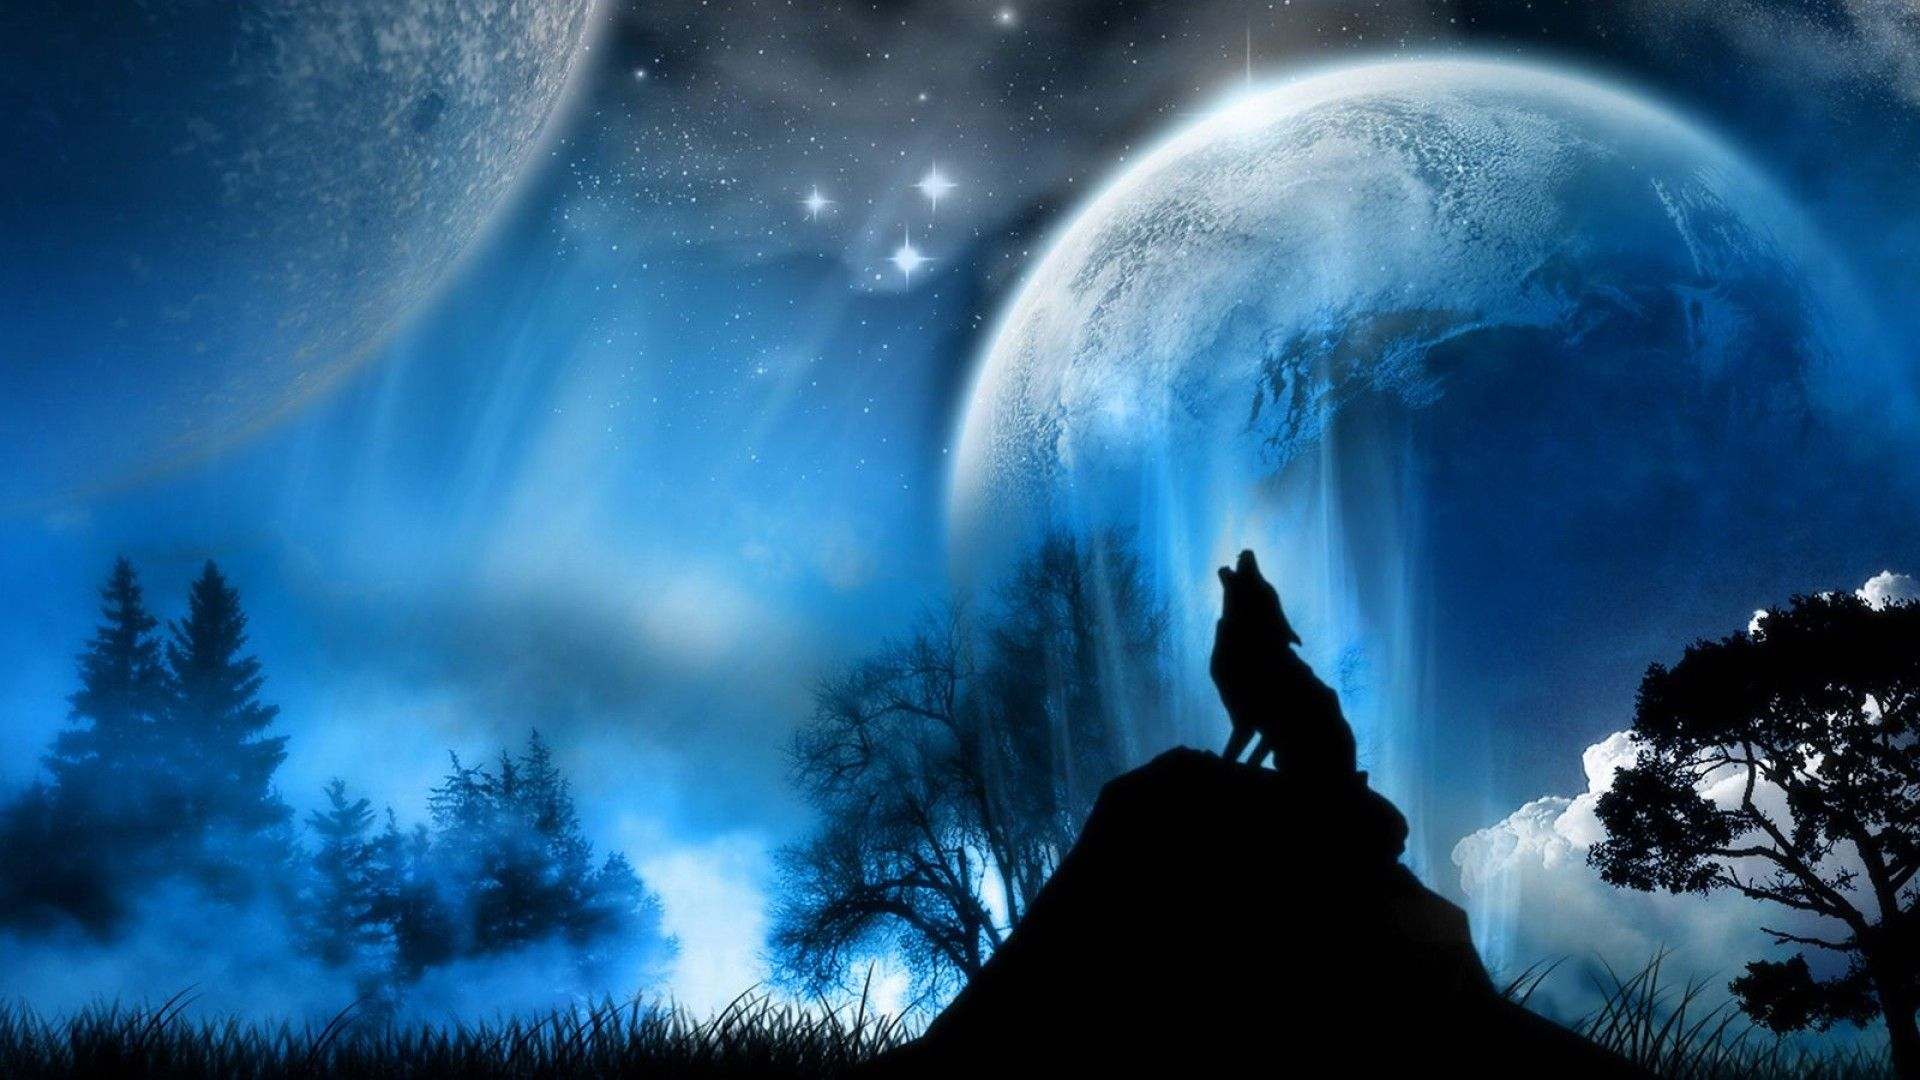 Black Wolf Wallpaper 1920x1080 Jpg 1920 1080 Scenery Wallpaper Wolf Wallpaper Wallpaper Pictures